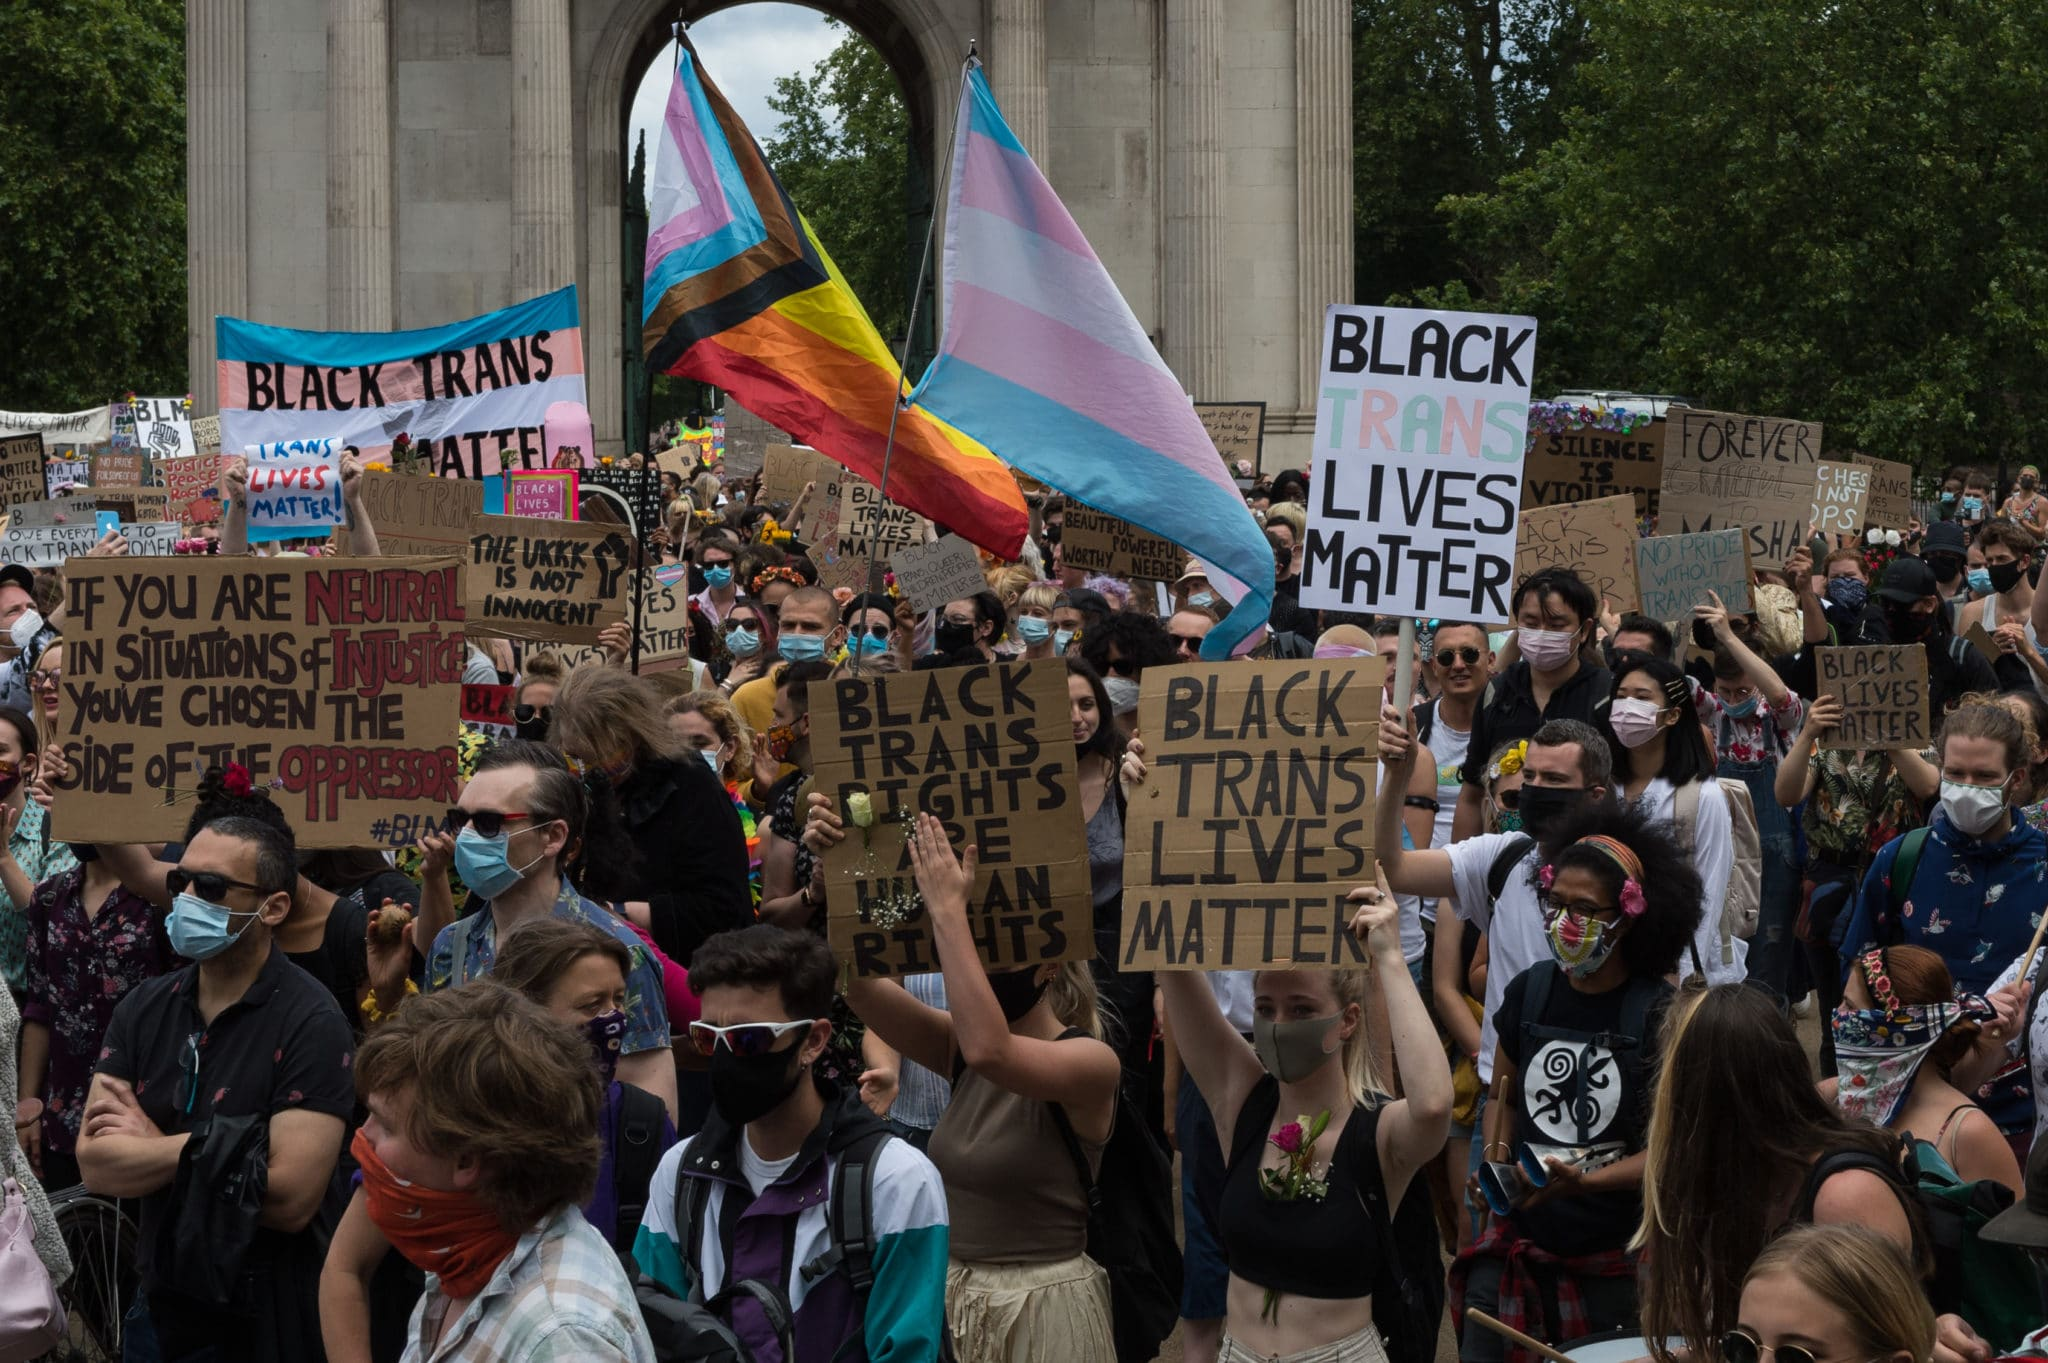 TransActual UK: Empowering the trans community and fighting transphobia